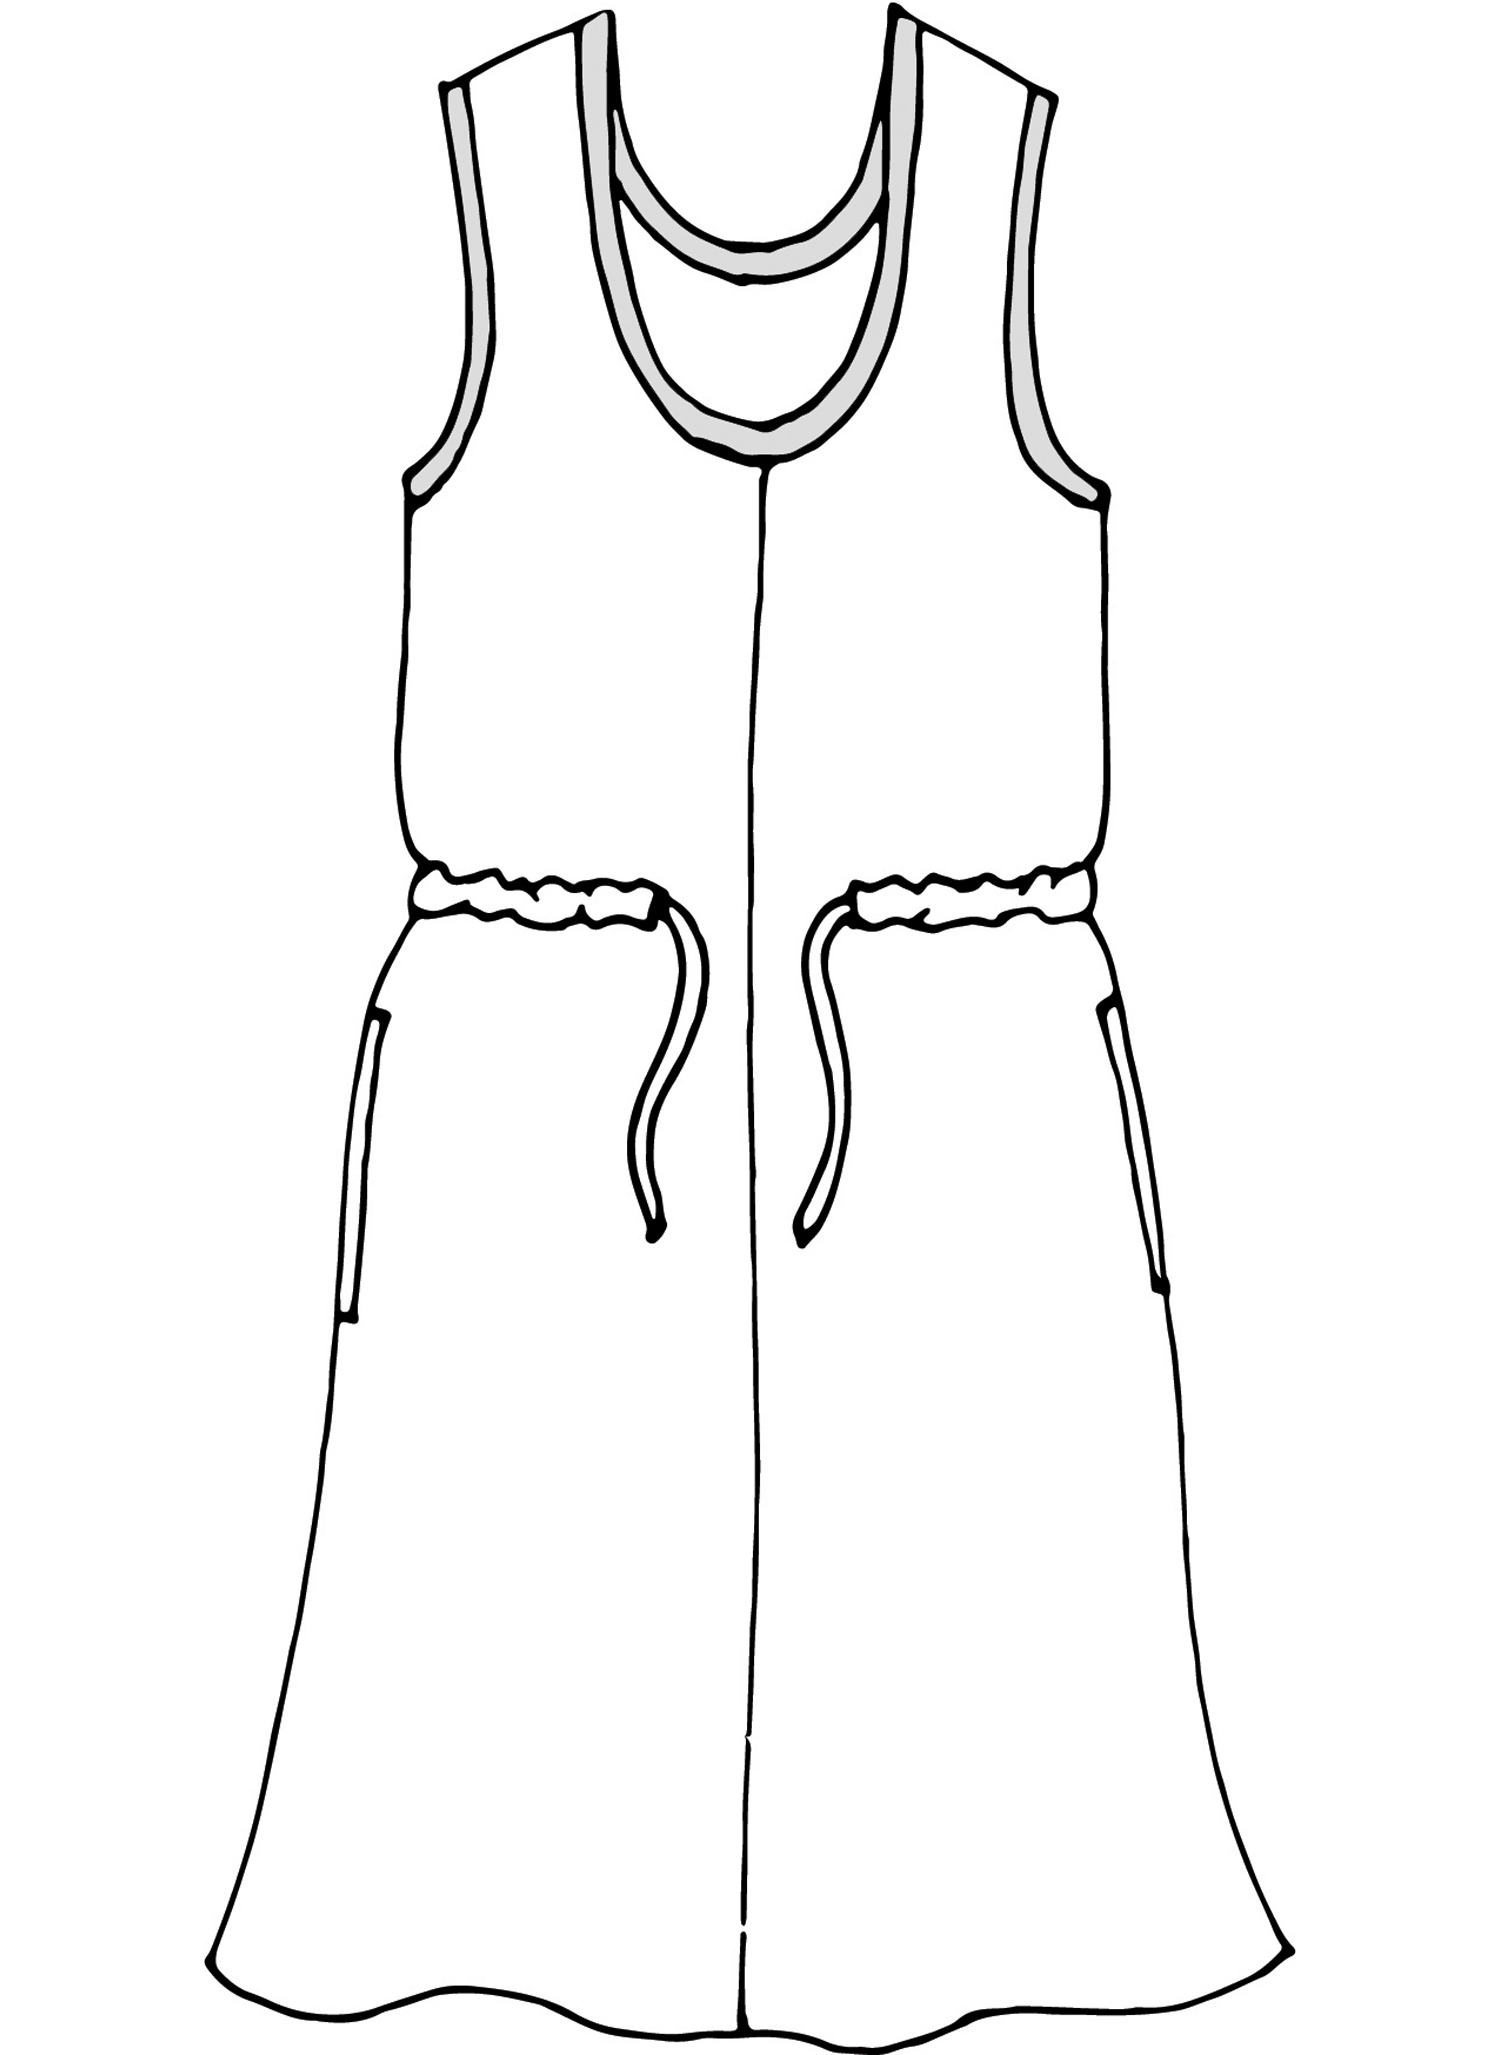 Metro Dress sketch image